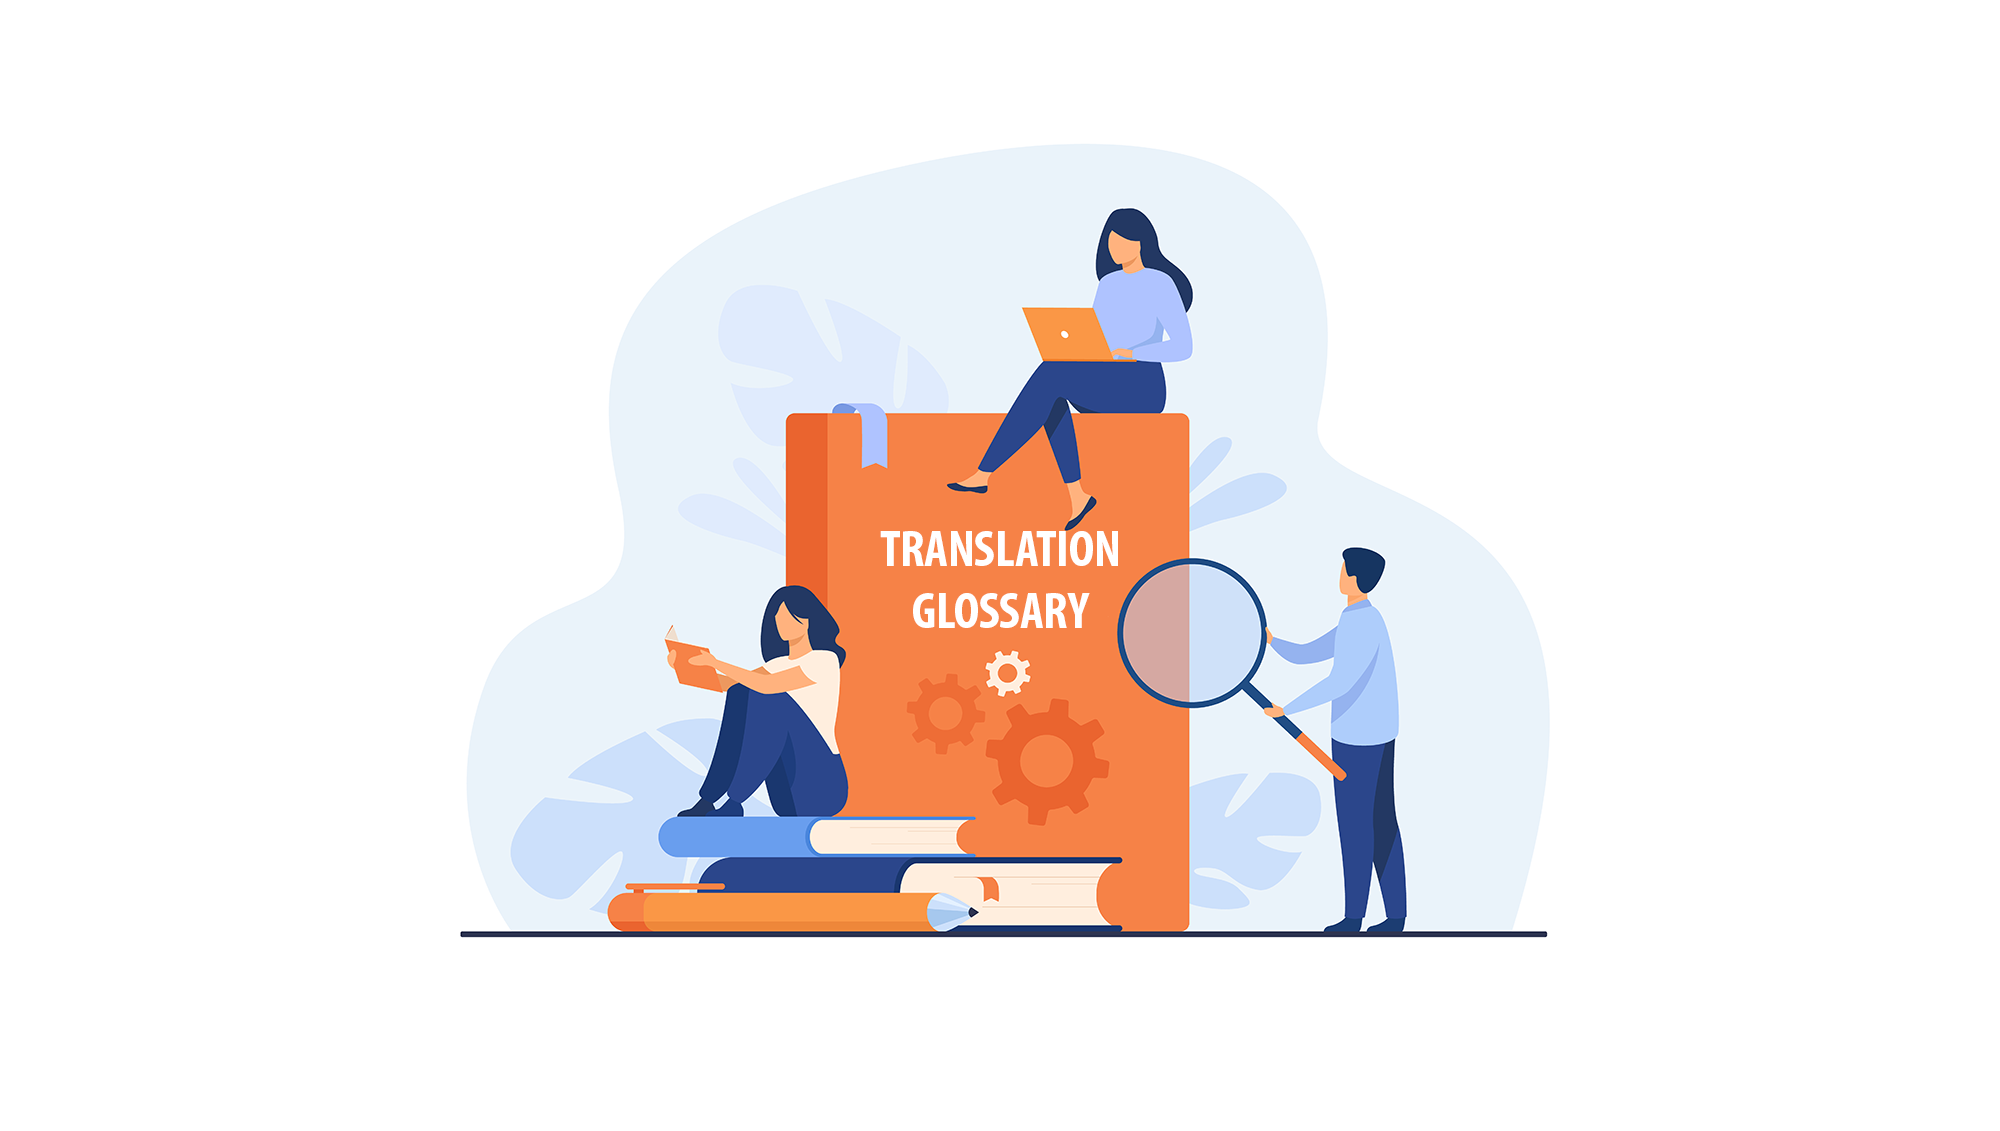 What is a Translation Glossary